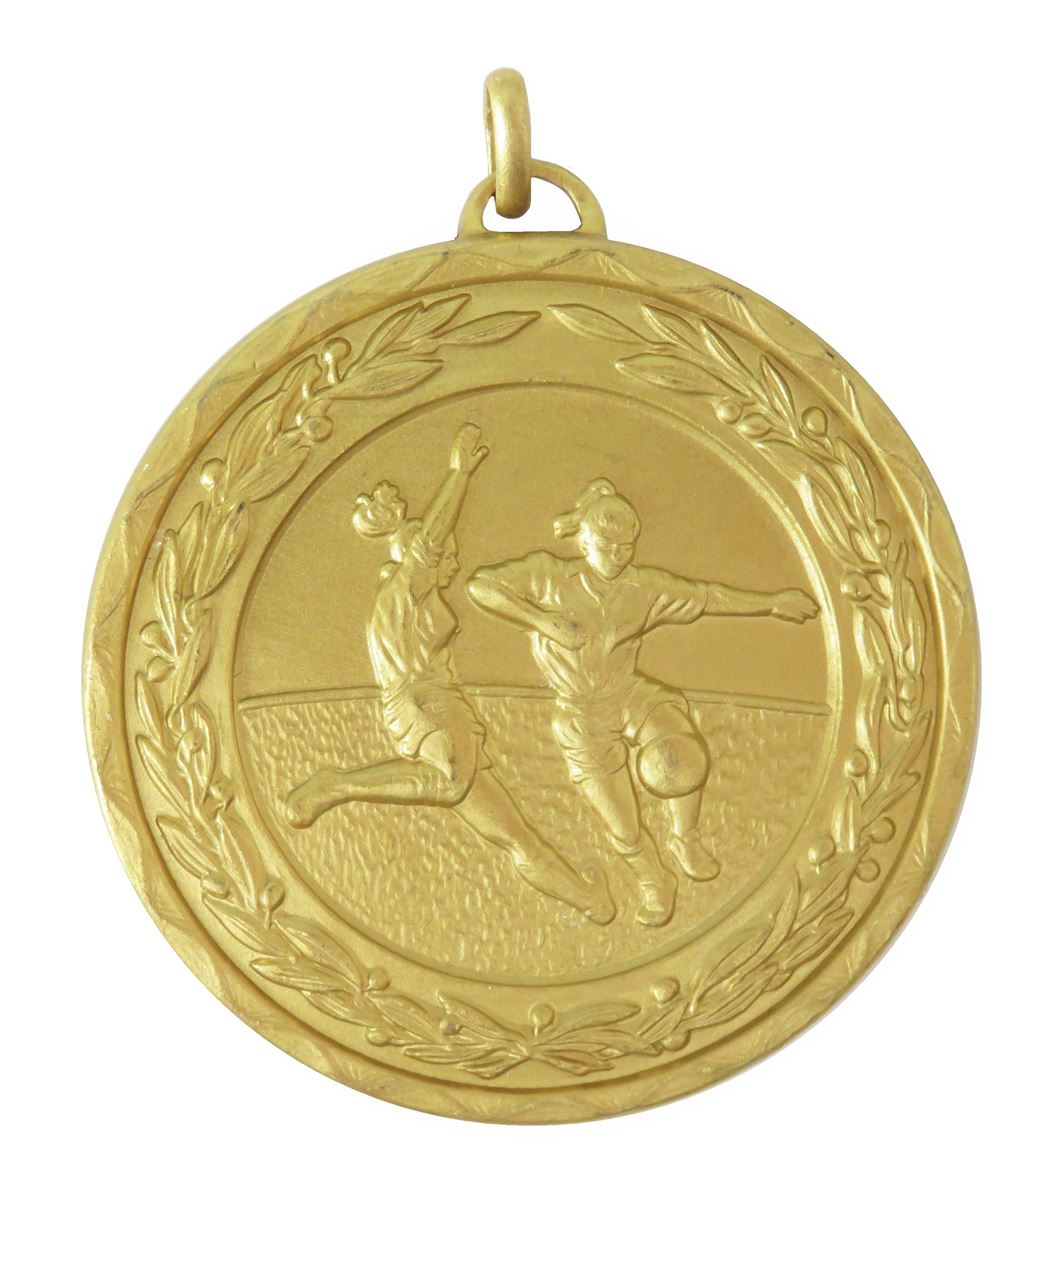 Gold Laurel Economy Woman's Football Medal (size: 50mm) - 9725E